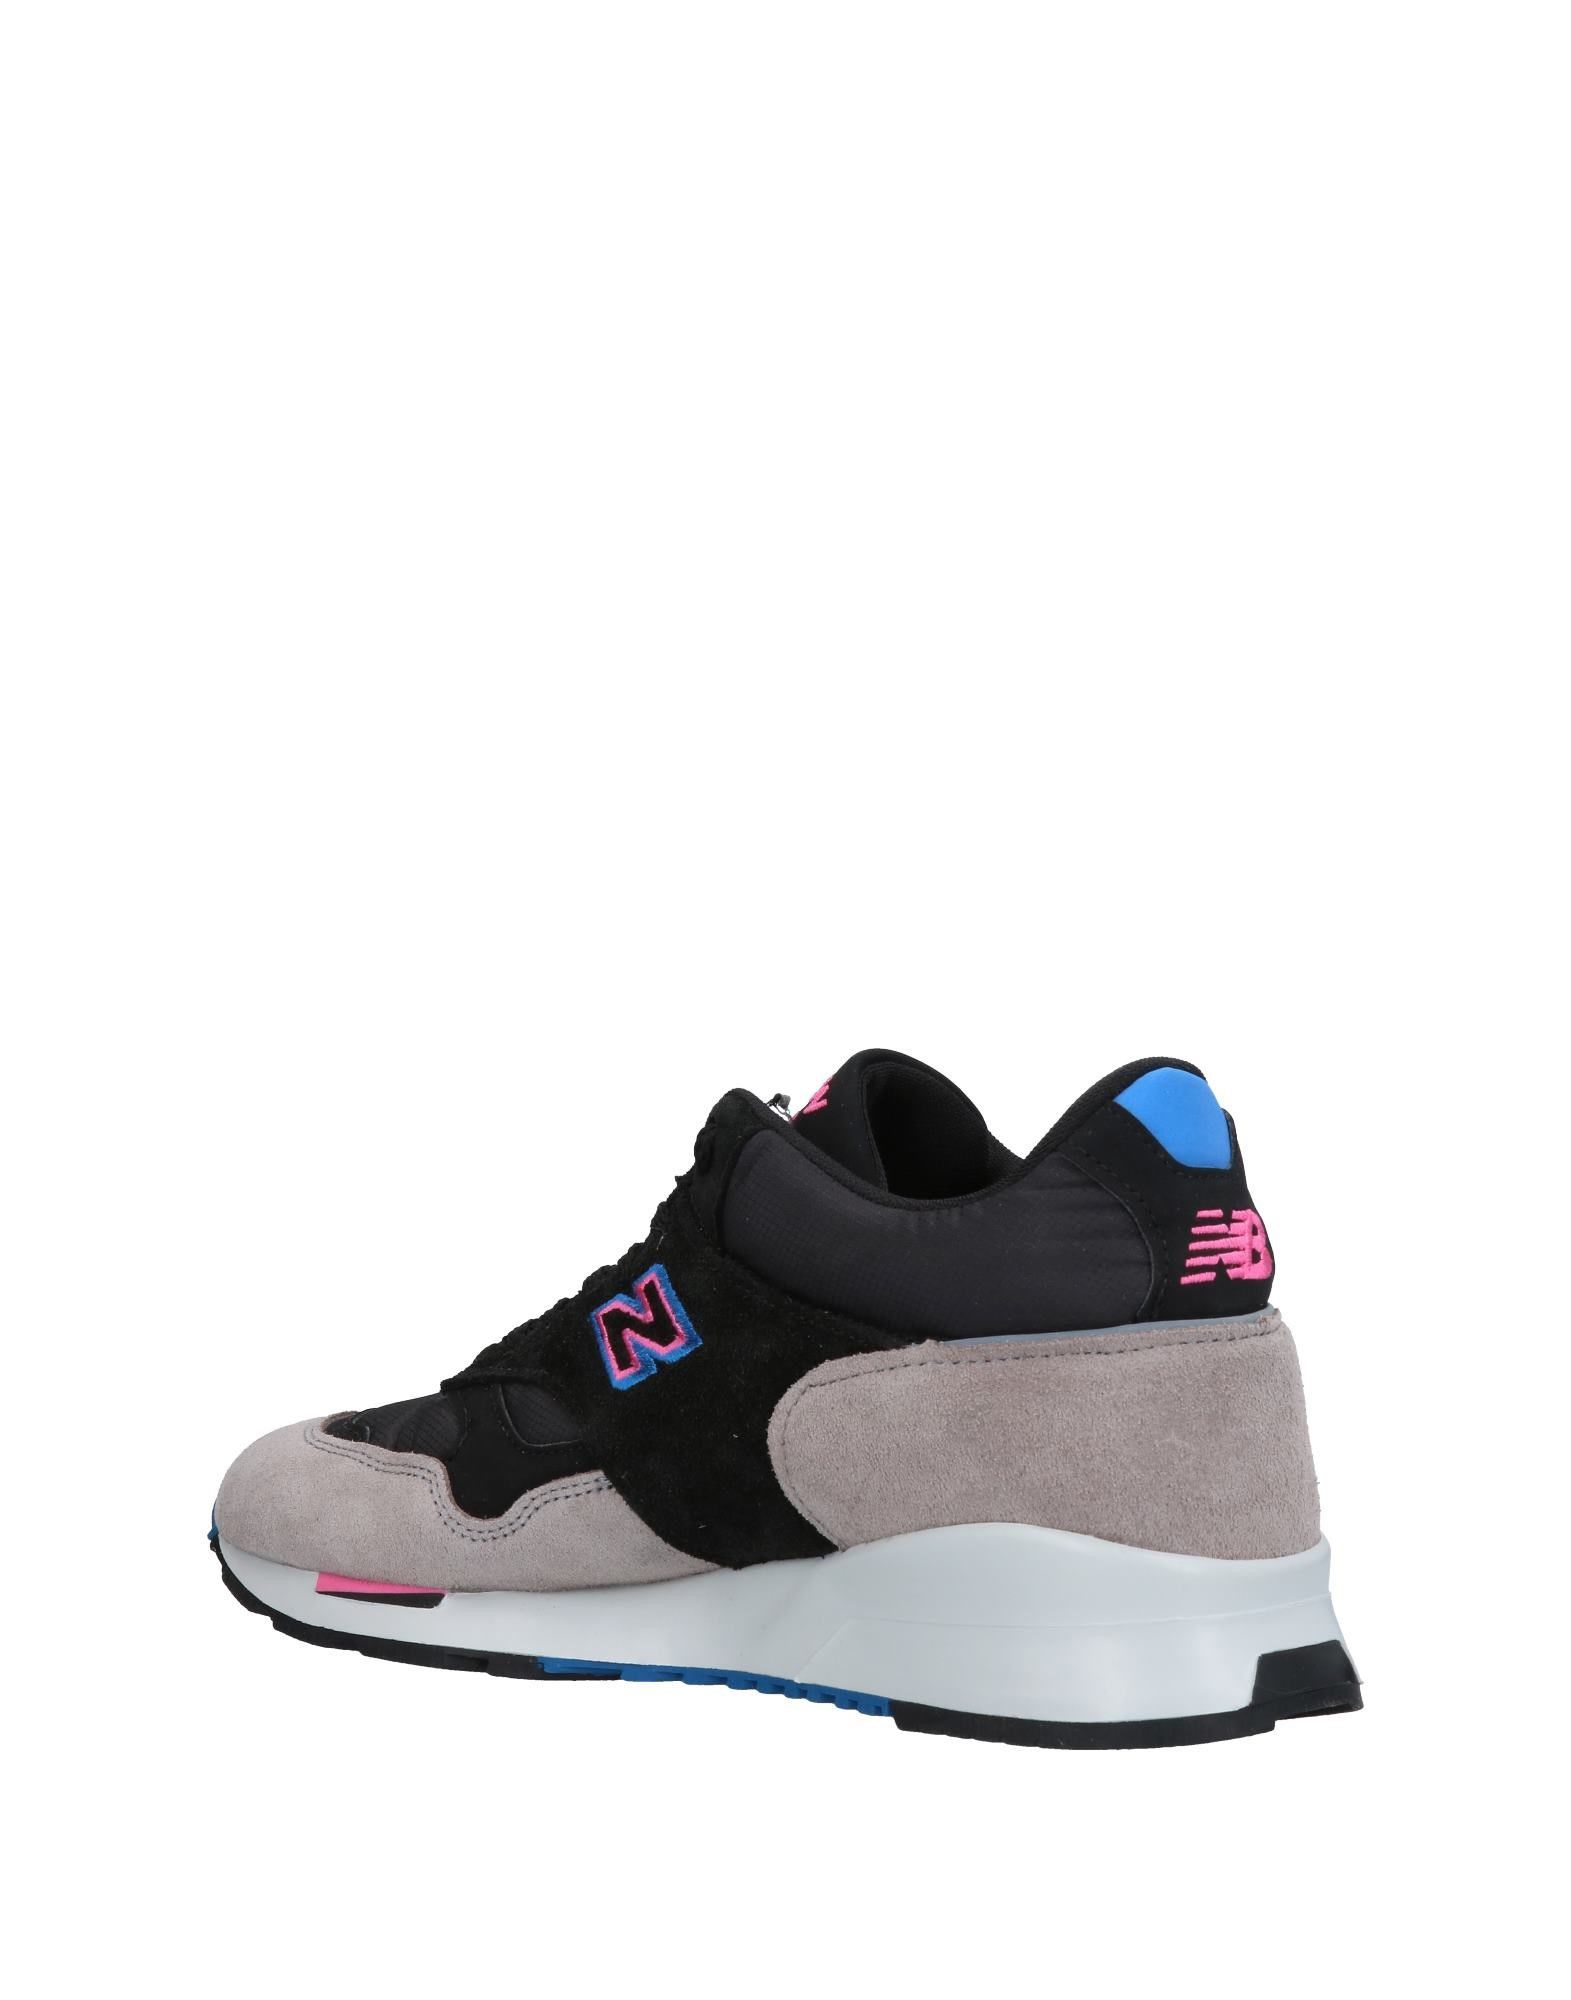 Sneakers New Balance Femme - Sneakers New Balance sur